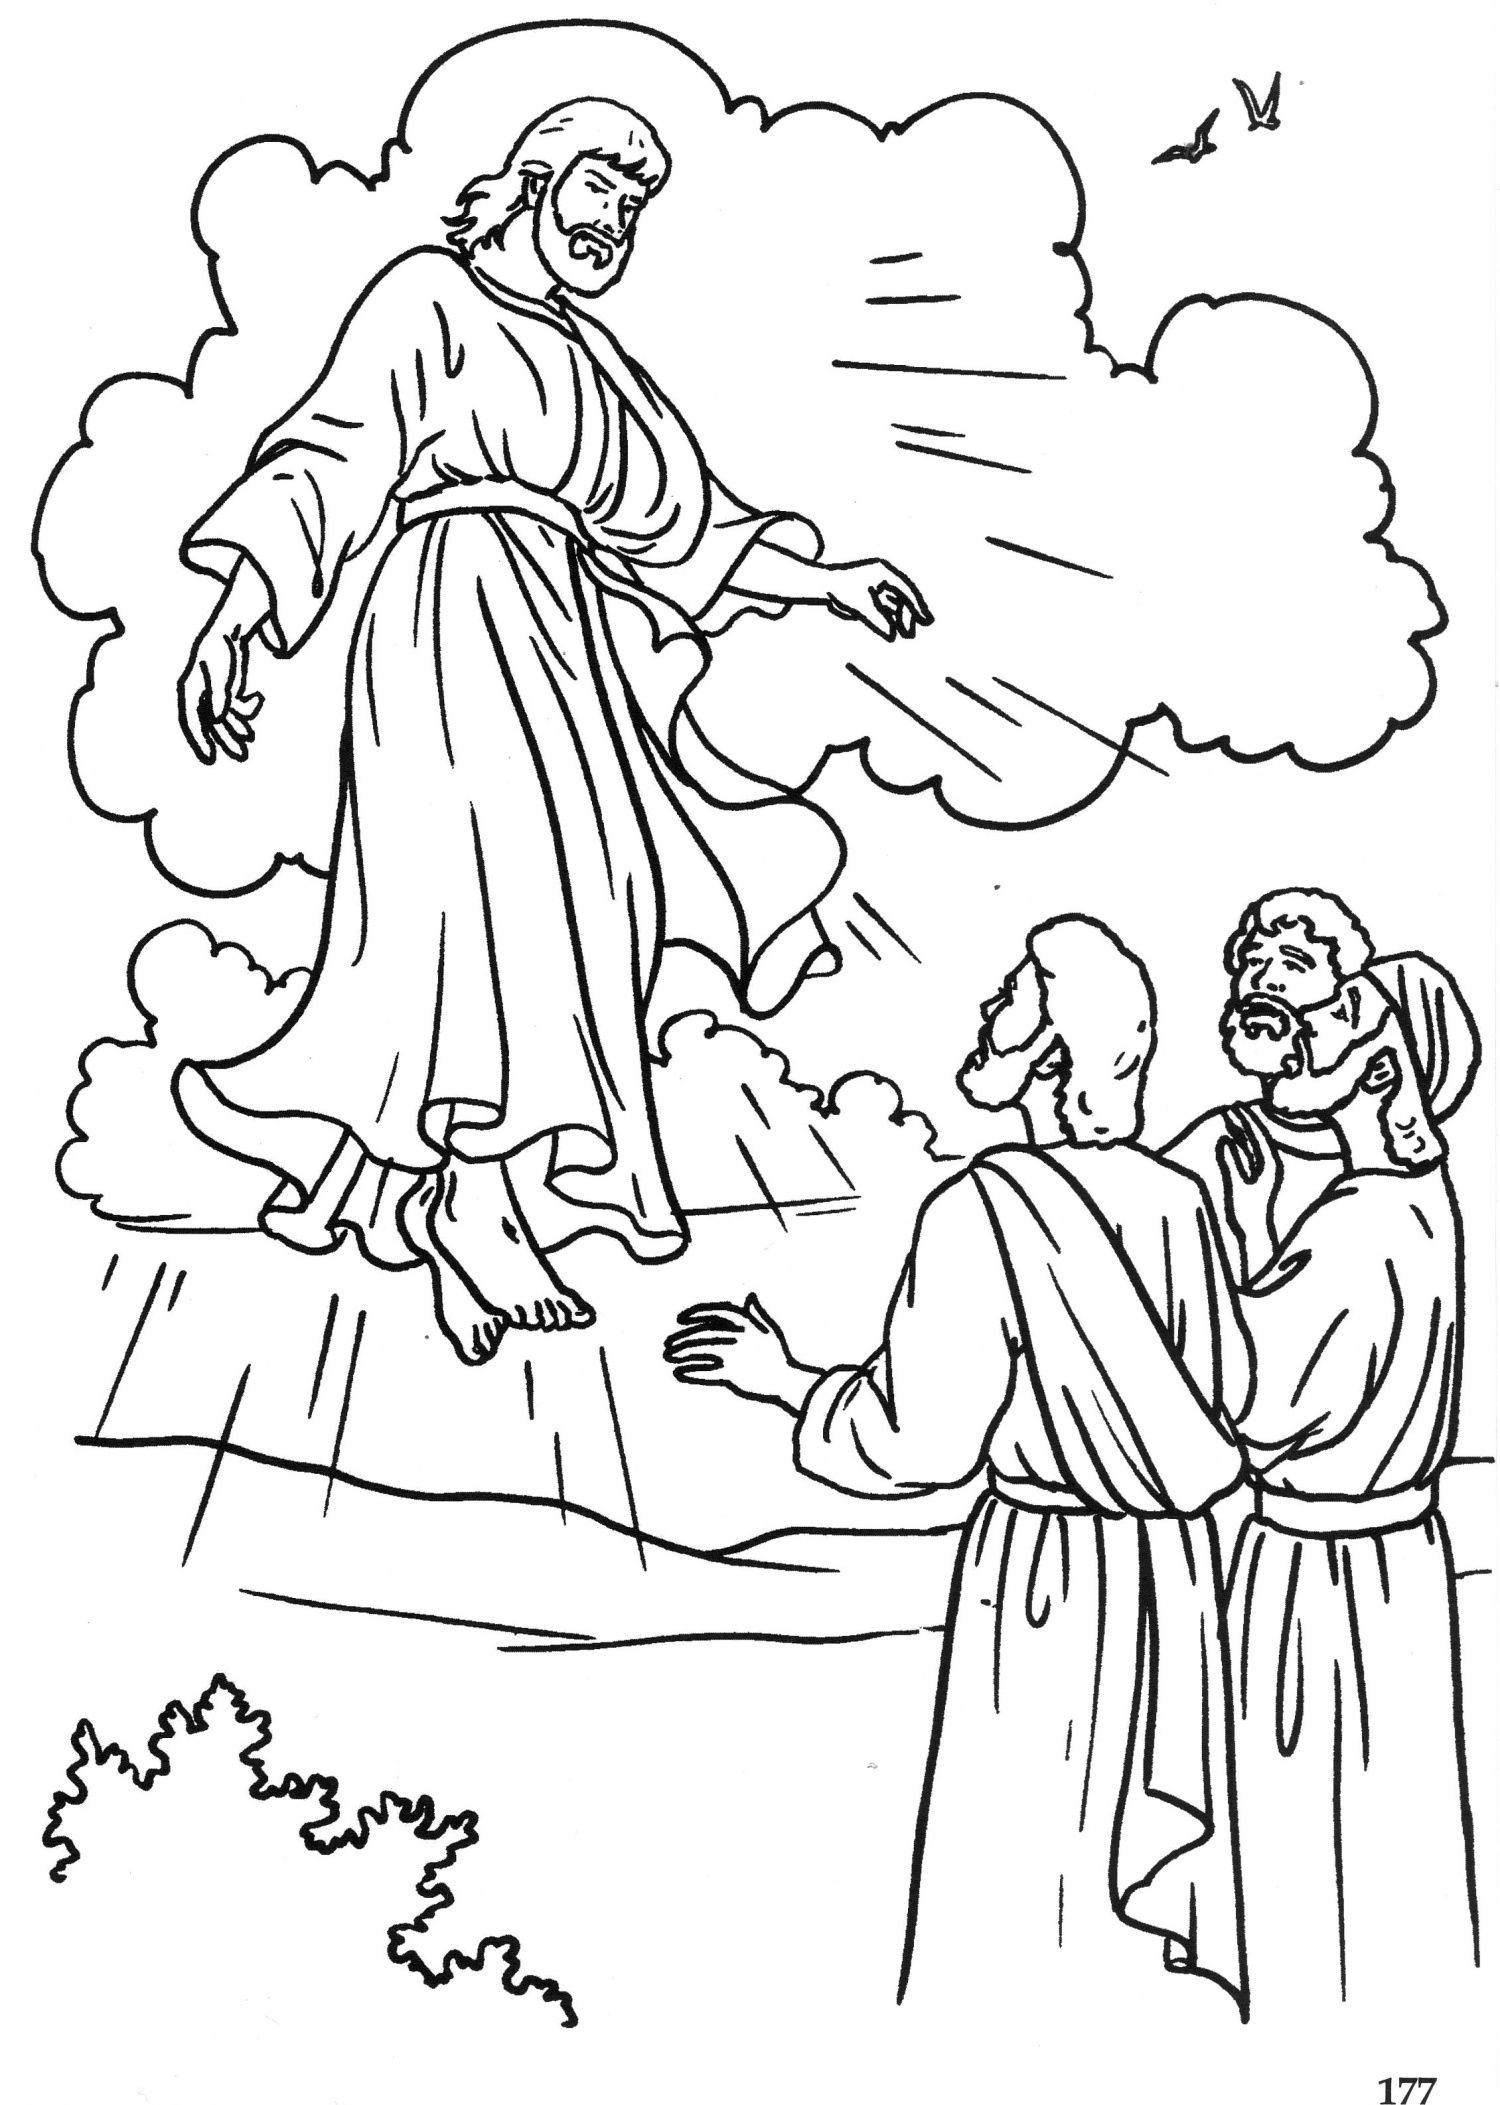 Drawings To Color Easter Week Ascension Of Jesus To Color